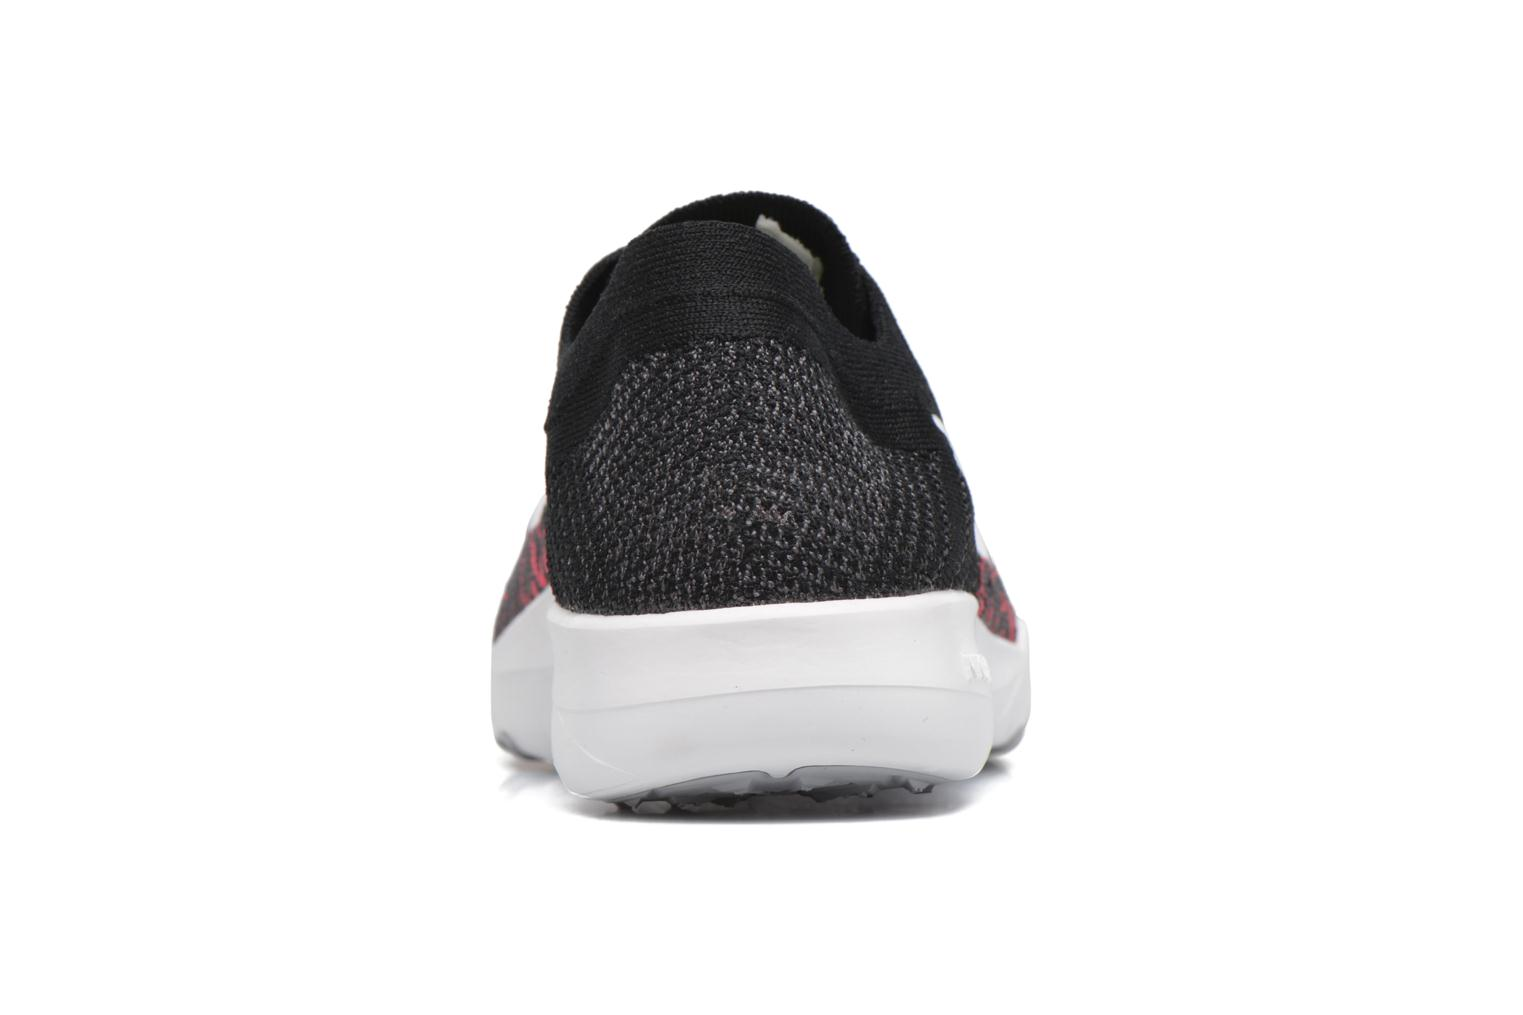 Wmns Nike Free Tr Flyknit 2 Black/White-Hyper Punch-Dark Grey